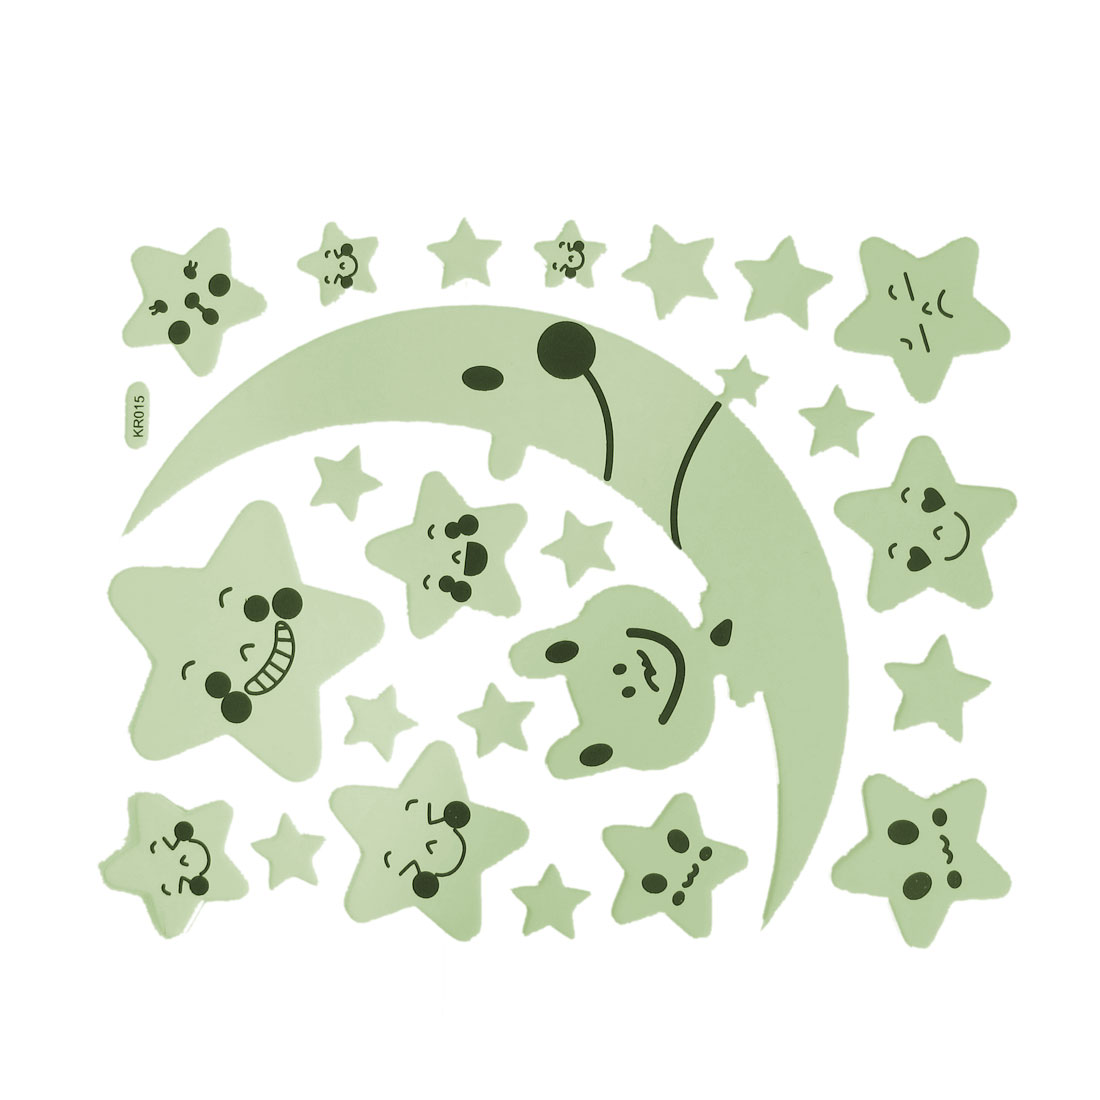 23 Pcs PU Leather Moon Stars Shape Luminous Stickers Wall Decor Light Green Black